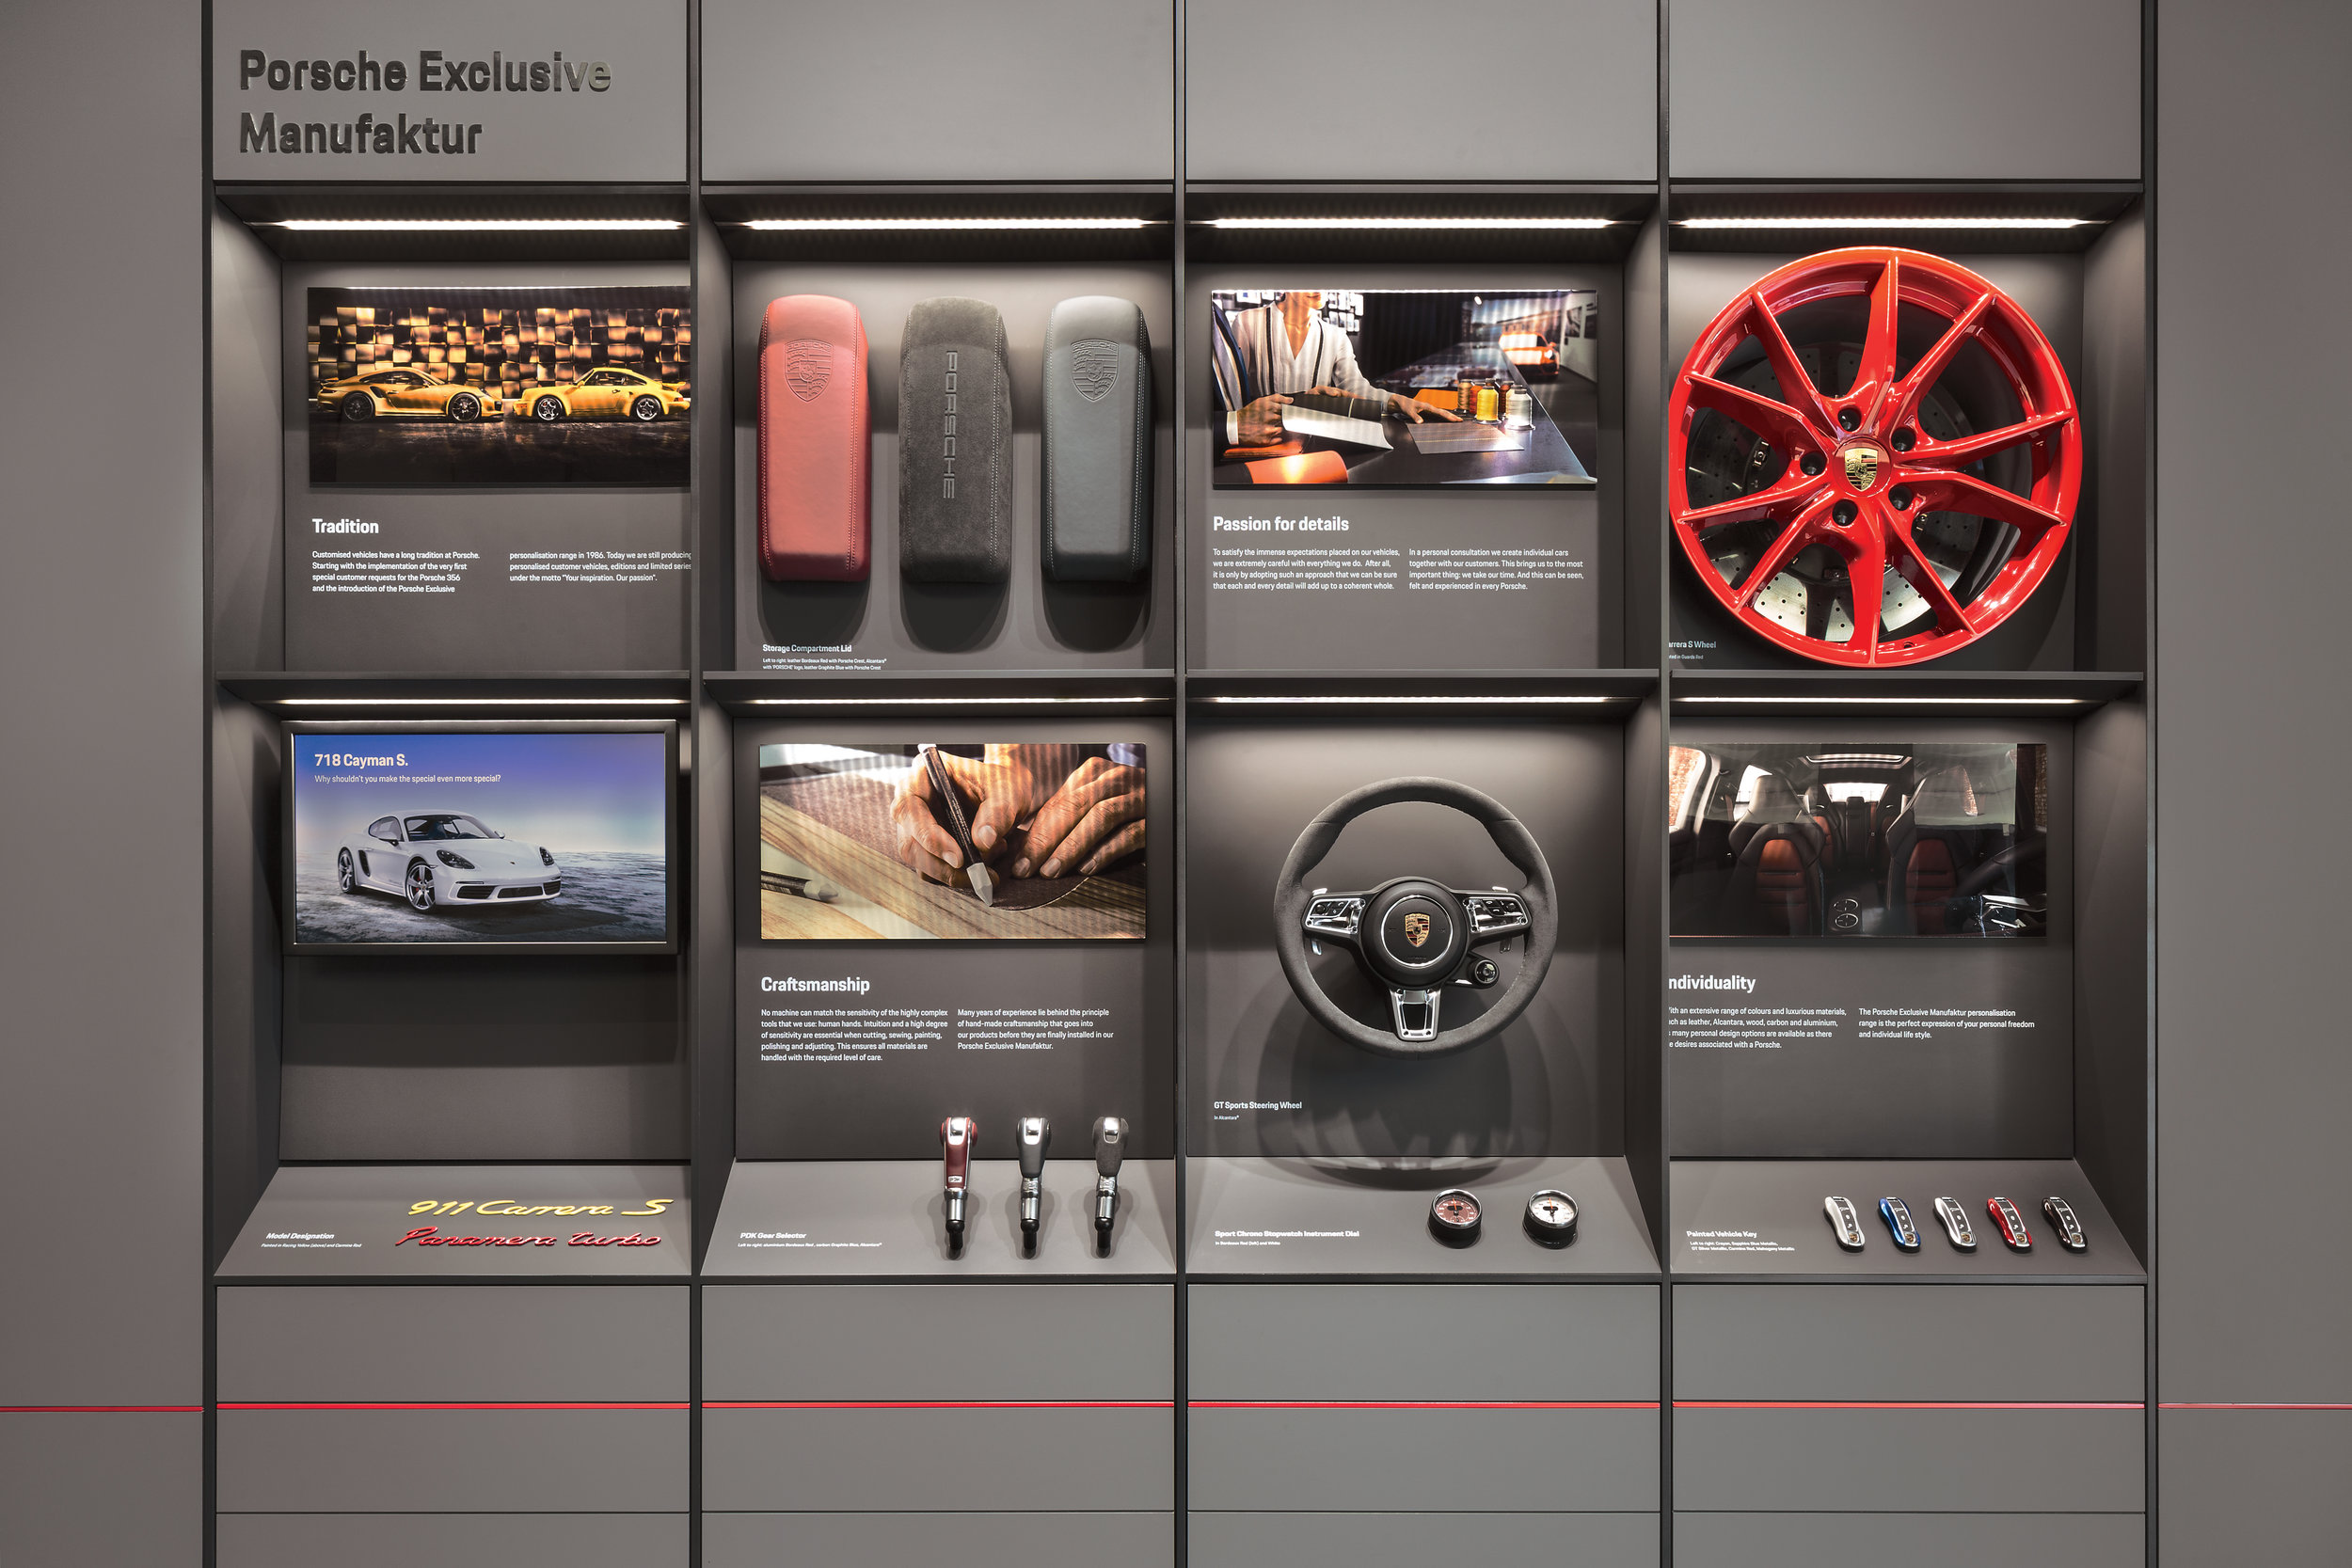 porsche-studio_retail-interior-design_coordination-berlin_11a.jpg